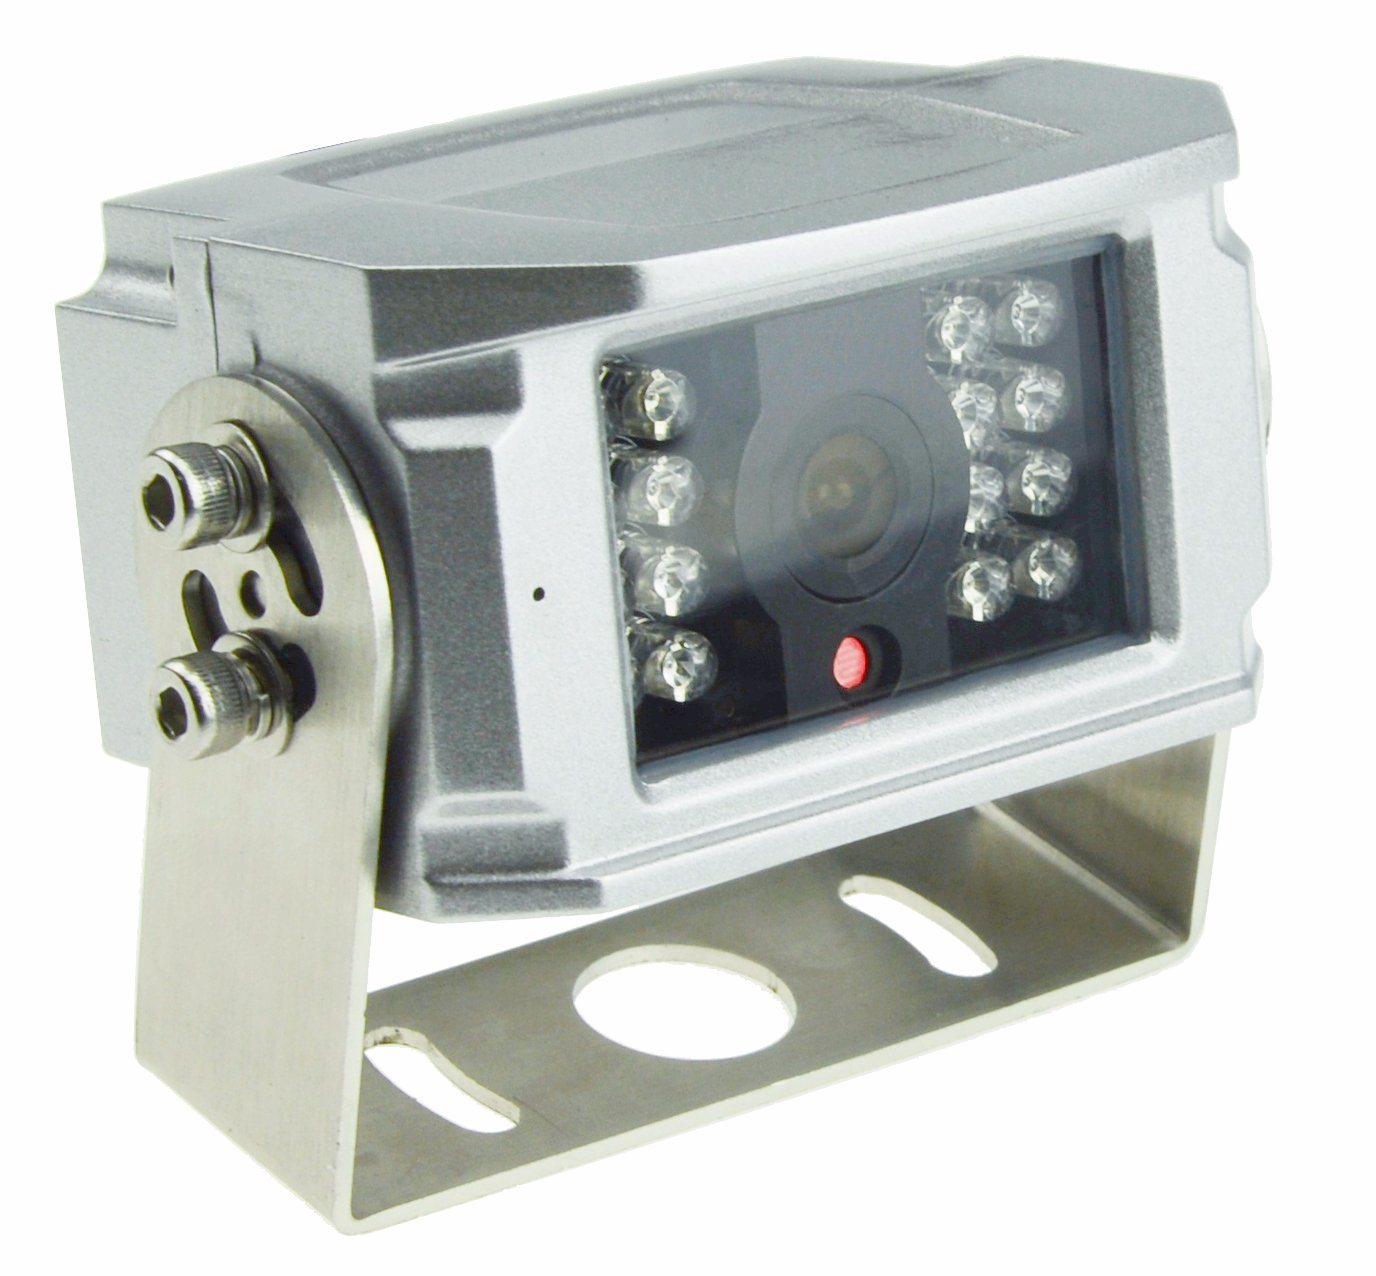 Newest Standard Night Vision Powedrful Camera with 20 LED Lights